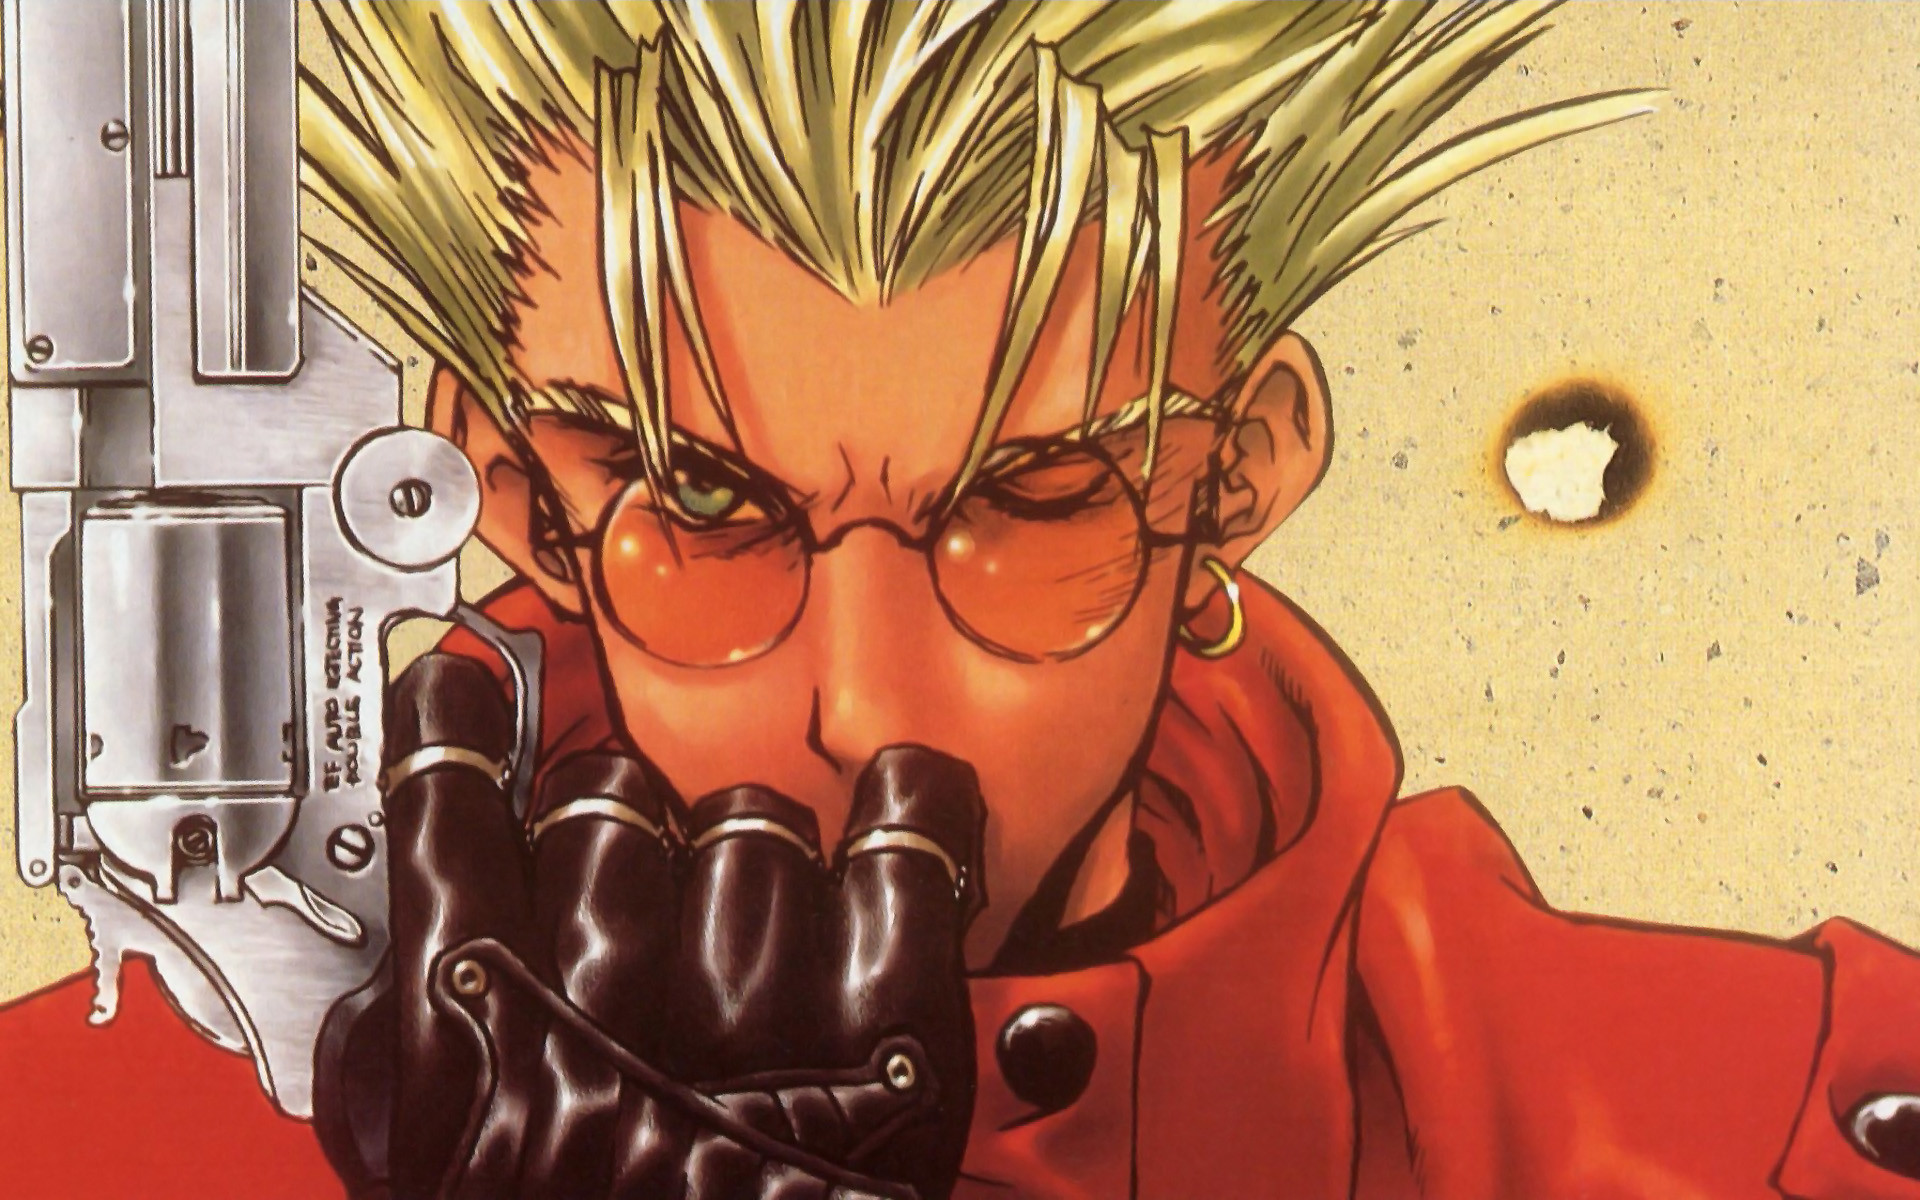 Res: 1920x1200, Anime - Trigun Wallpaper